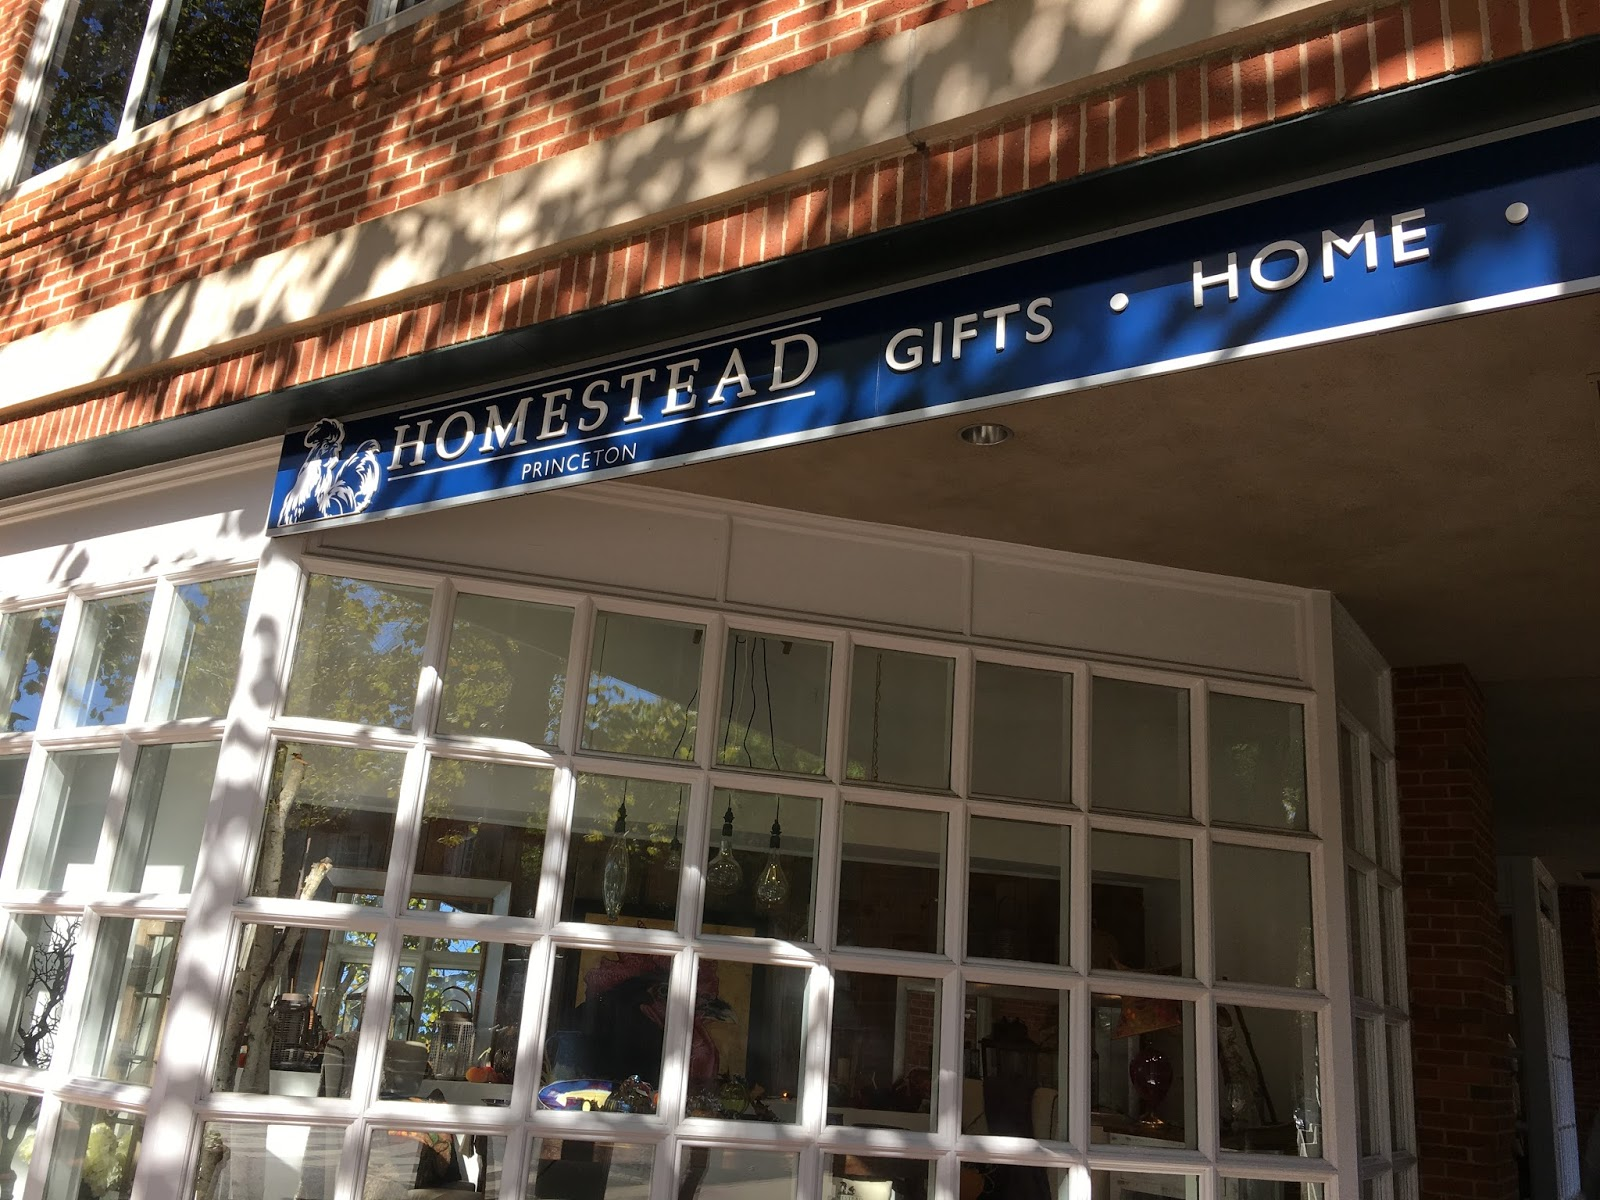 Homestead Store in Princeton - my new favorite store!